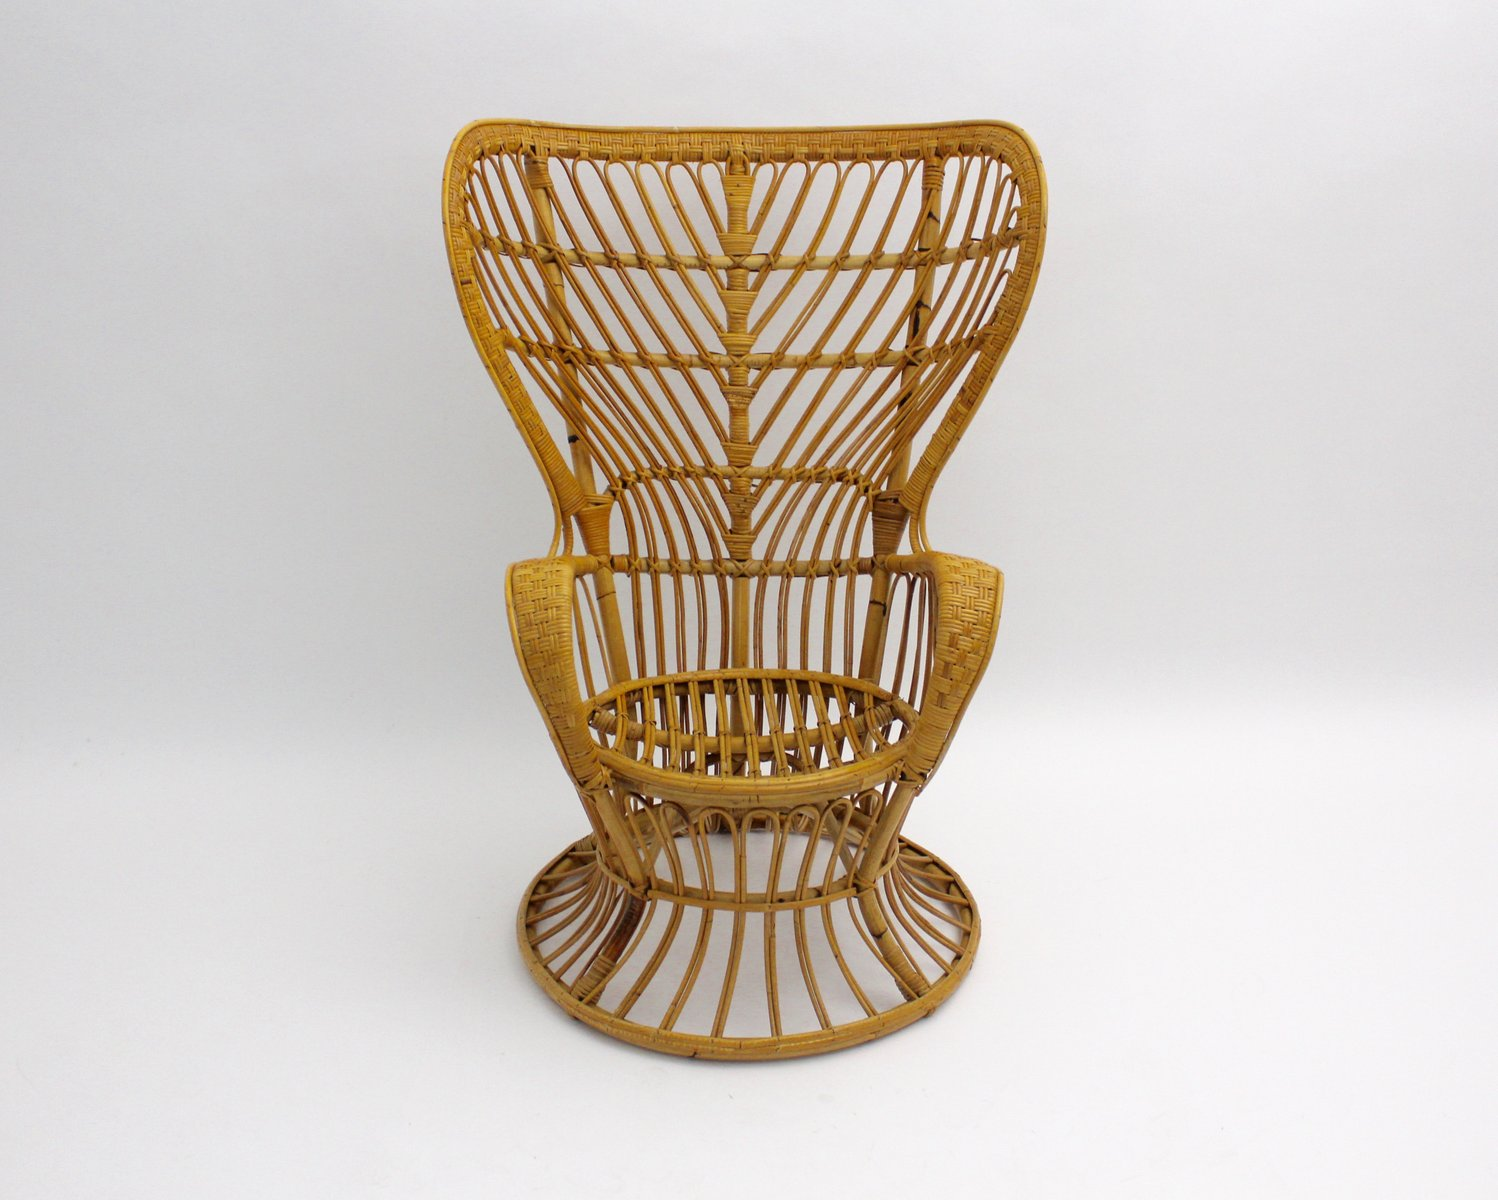 Awesome Wicker Peacock Chair #11 - Italian Rattan Peacock Chair By Lio Carminati